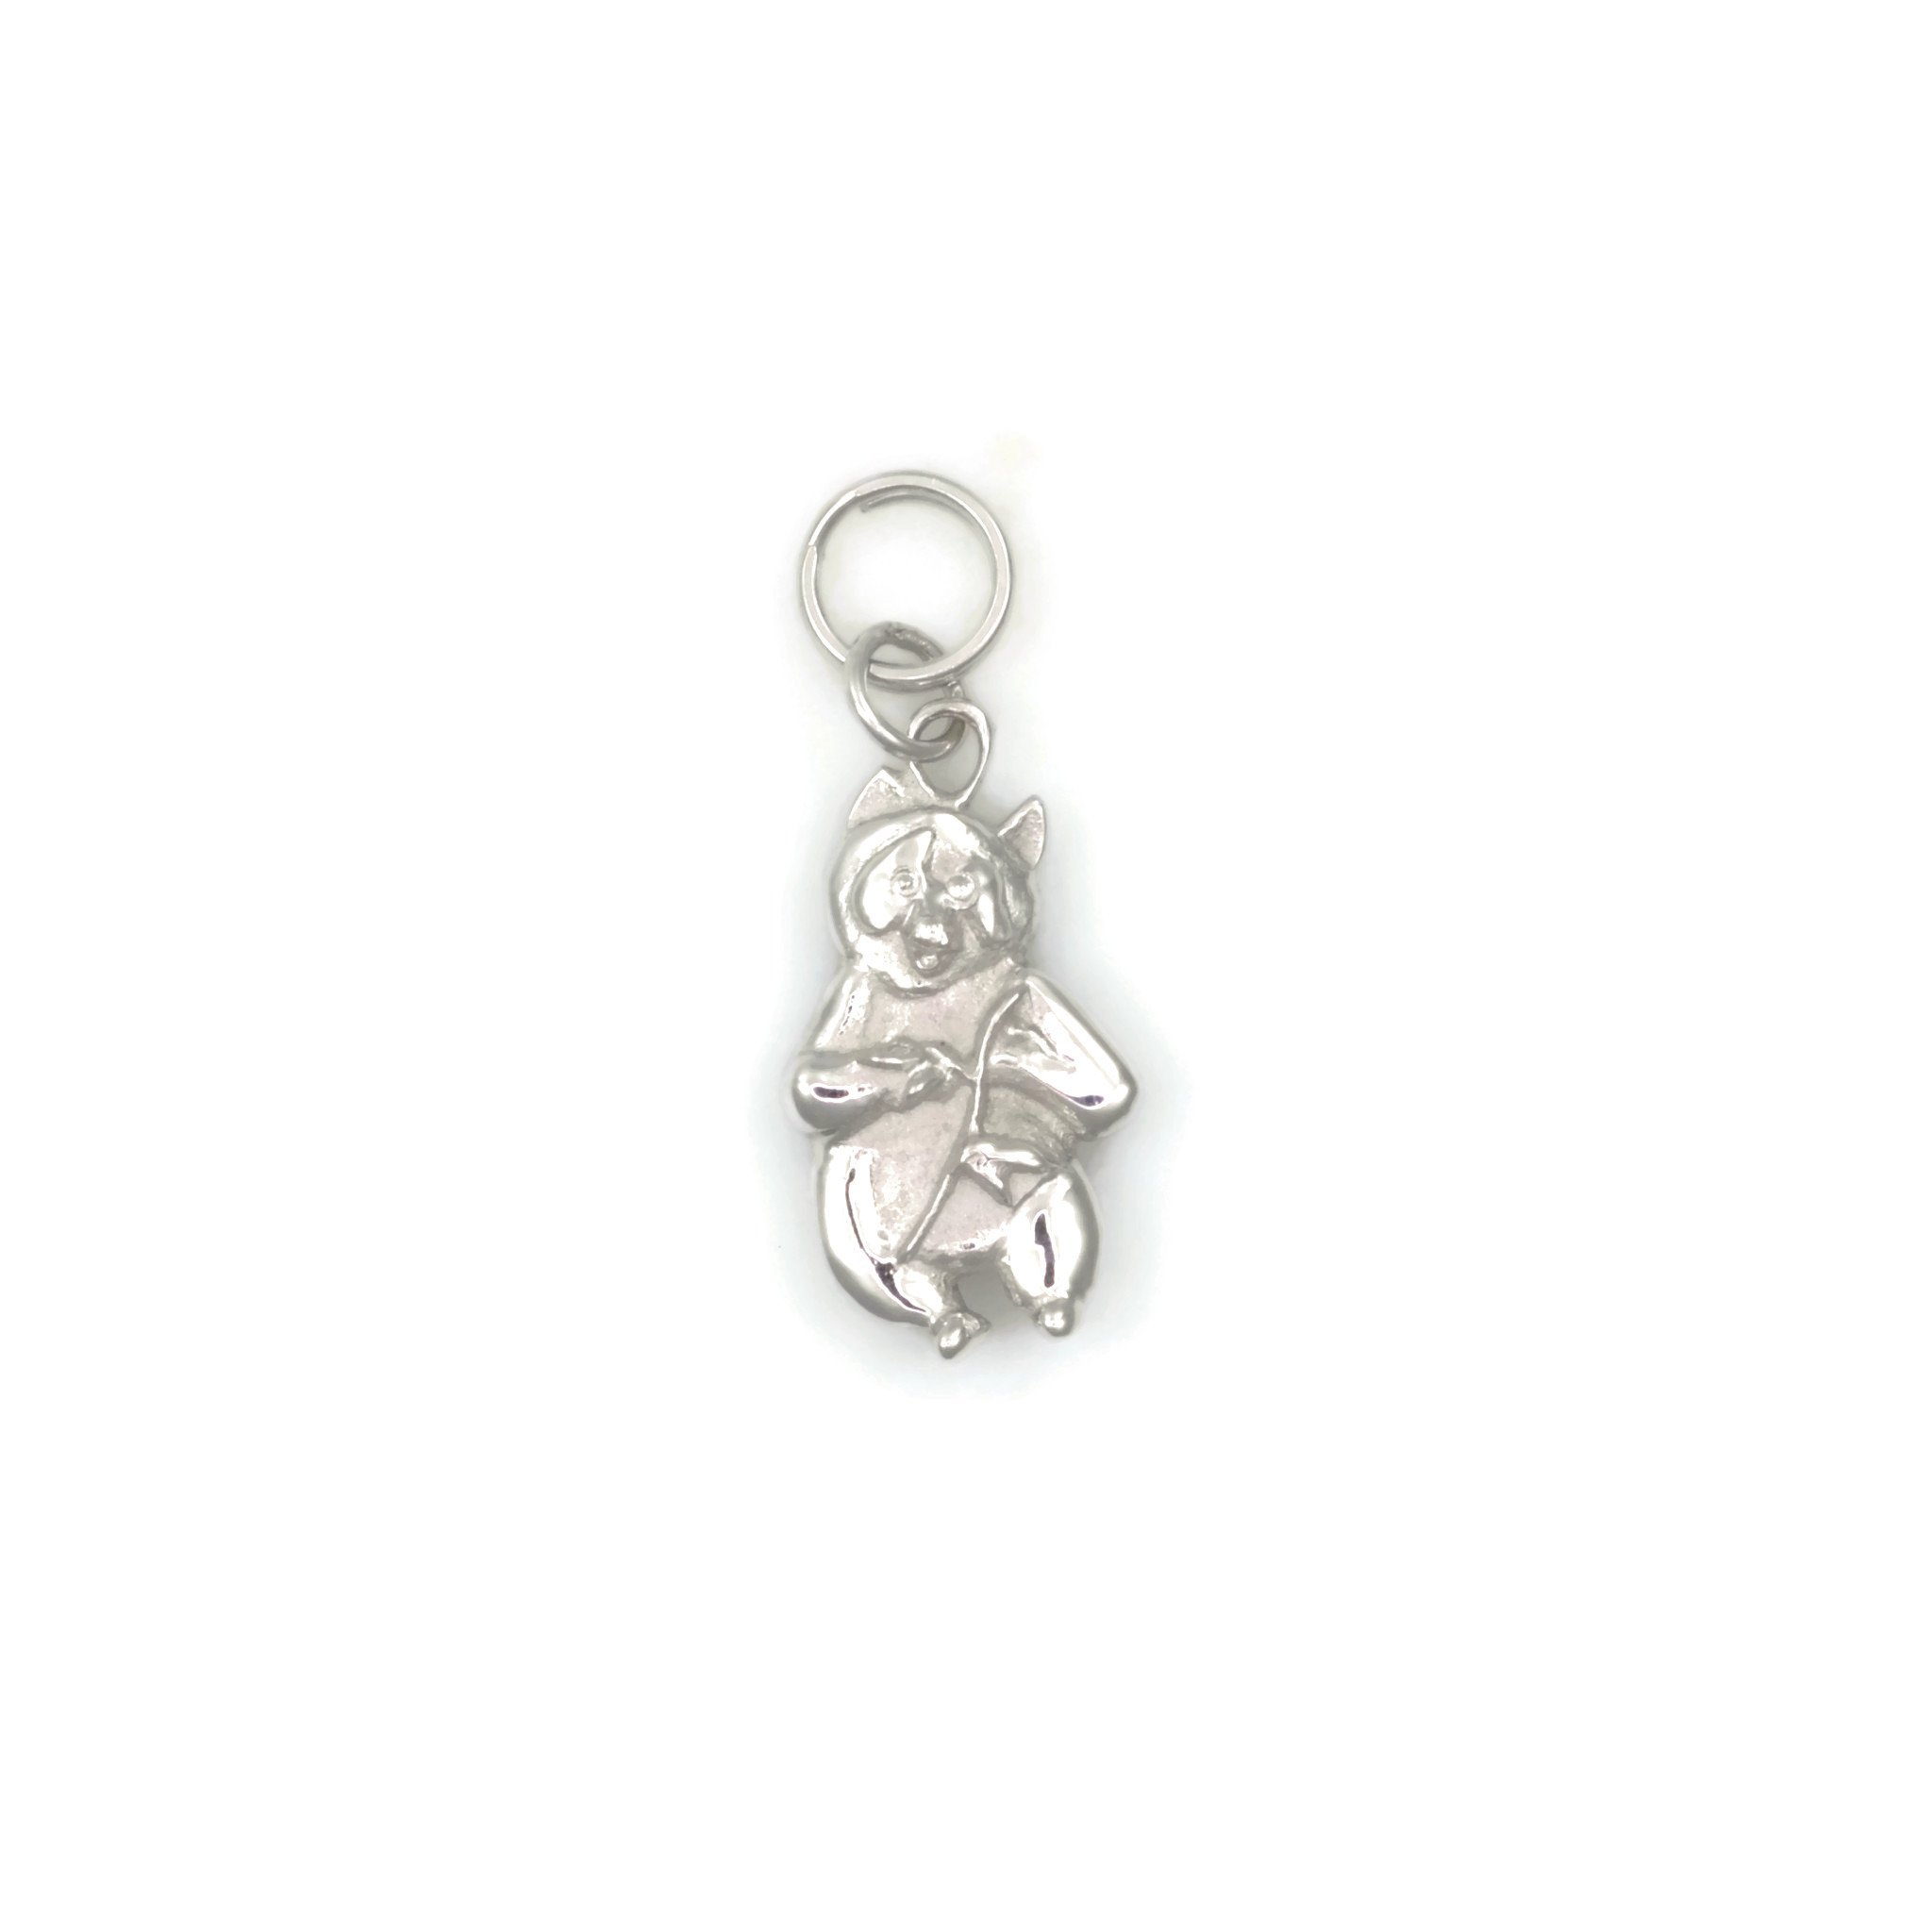 14Kt Panda Charm, 14Kt White Gold Panda Bear Charm, 14Kt Gold Panda Pendant, Donna Pizarro, Animal Whimsey Collection